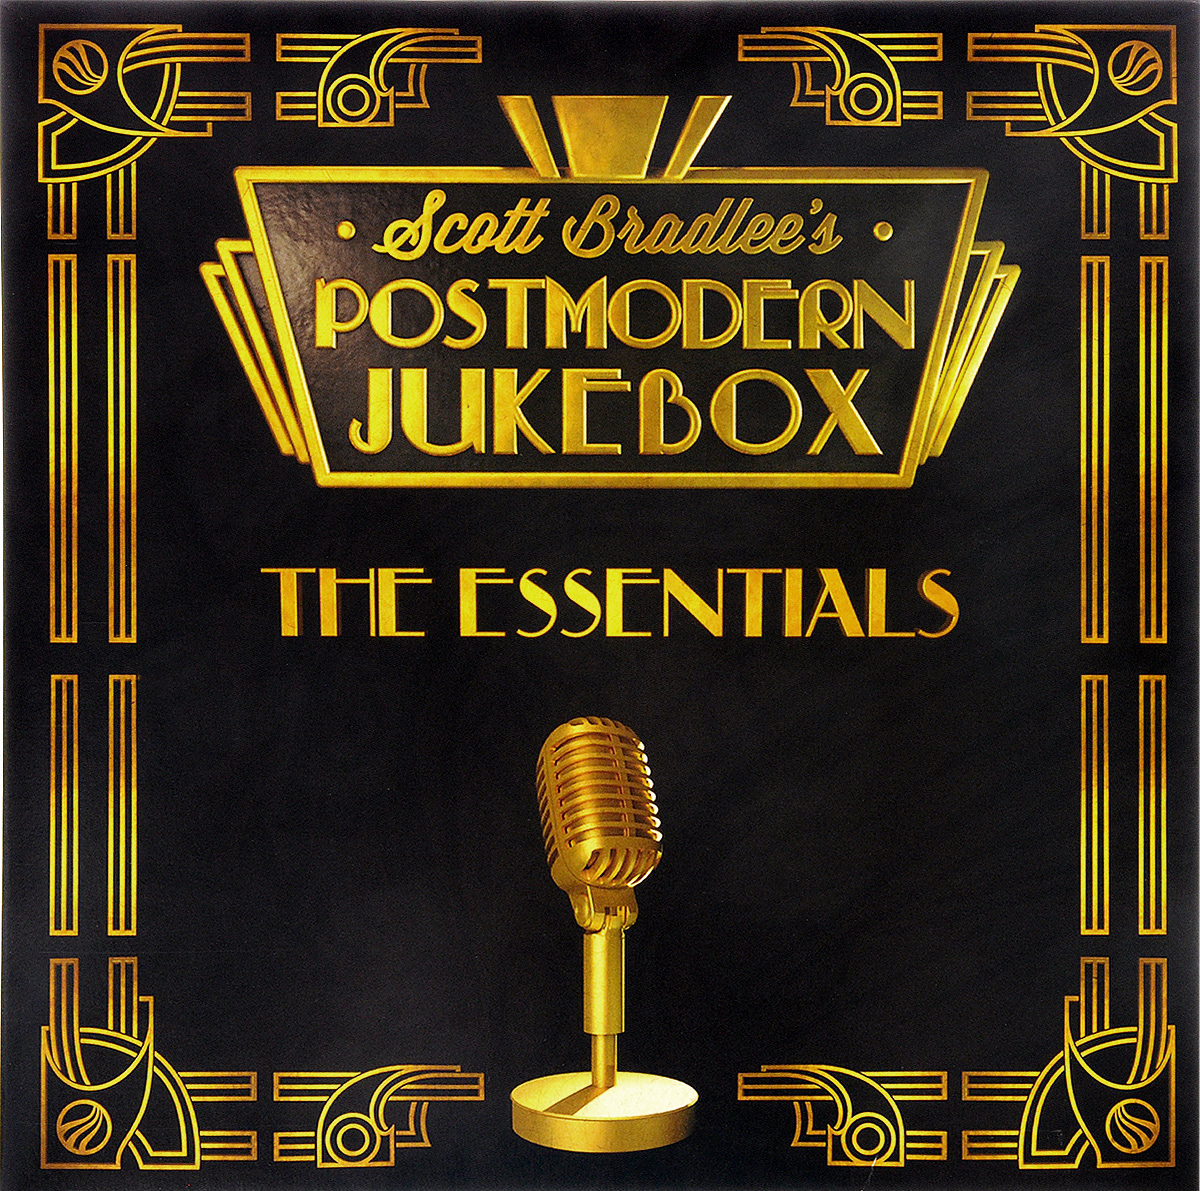 Postmodern Jukebox,Скотт Брэдли,Робин Адел Андерсон,Морган Джеймс,Ариана Савалас,Мейя Сайкс,Кейси Абрамс,Фон Смит,Хейли Рейнхарт,Лаванс Колли Scott Bradlee's Postmodern Jukebox. The Essentials (LP) цена